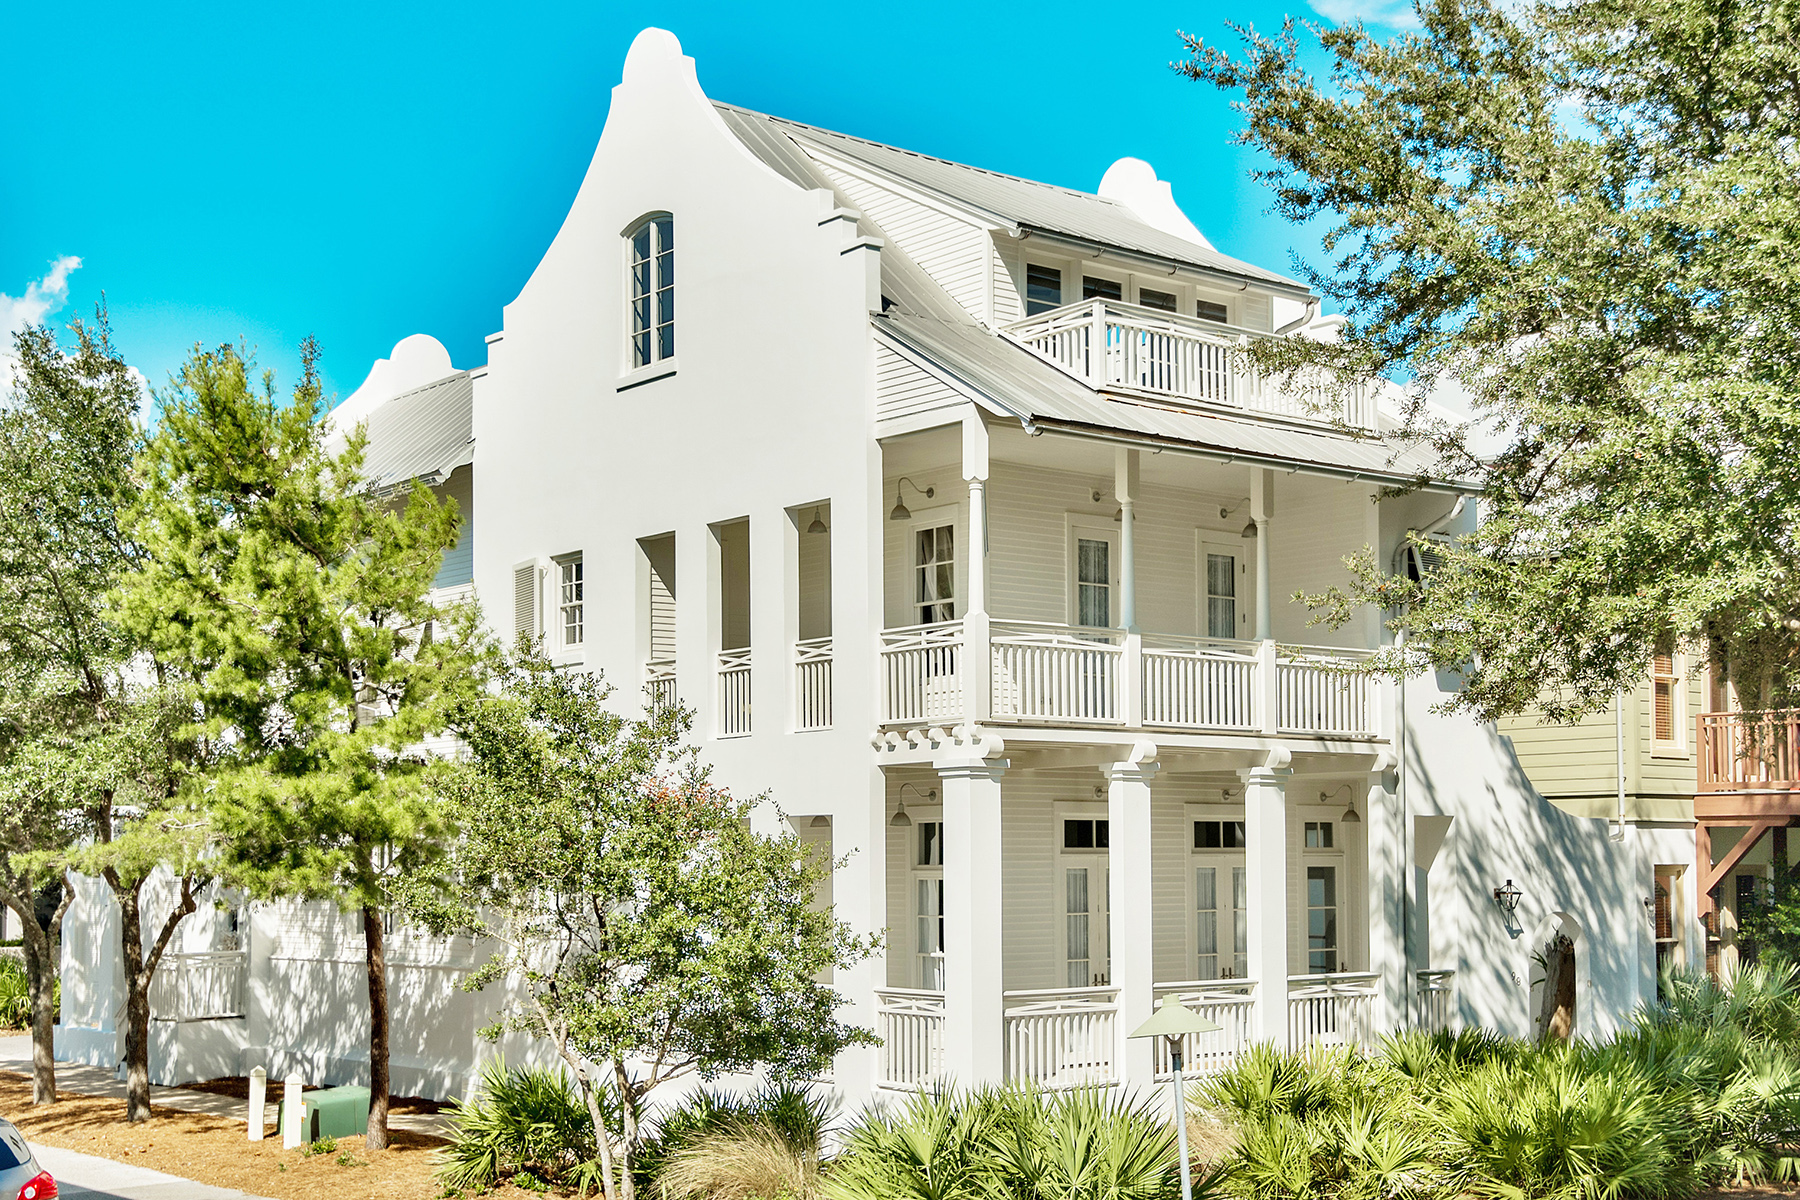 Casa Unifamiliar por un Venta en CLASSIC COURTYARD HOME WITH POOL IDEALLY LOCATED IN ROSEMARY BEACH 98 W Long Green Road Rosemary Beach, Rosemary Beach, Florida, 32461 Estados Unidos